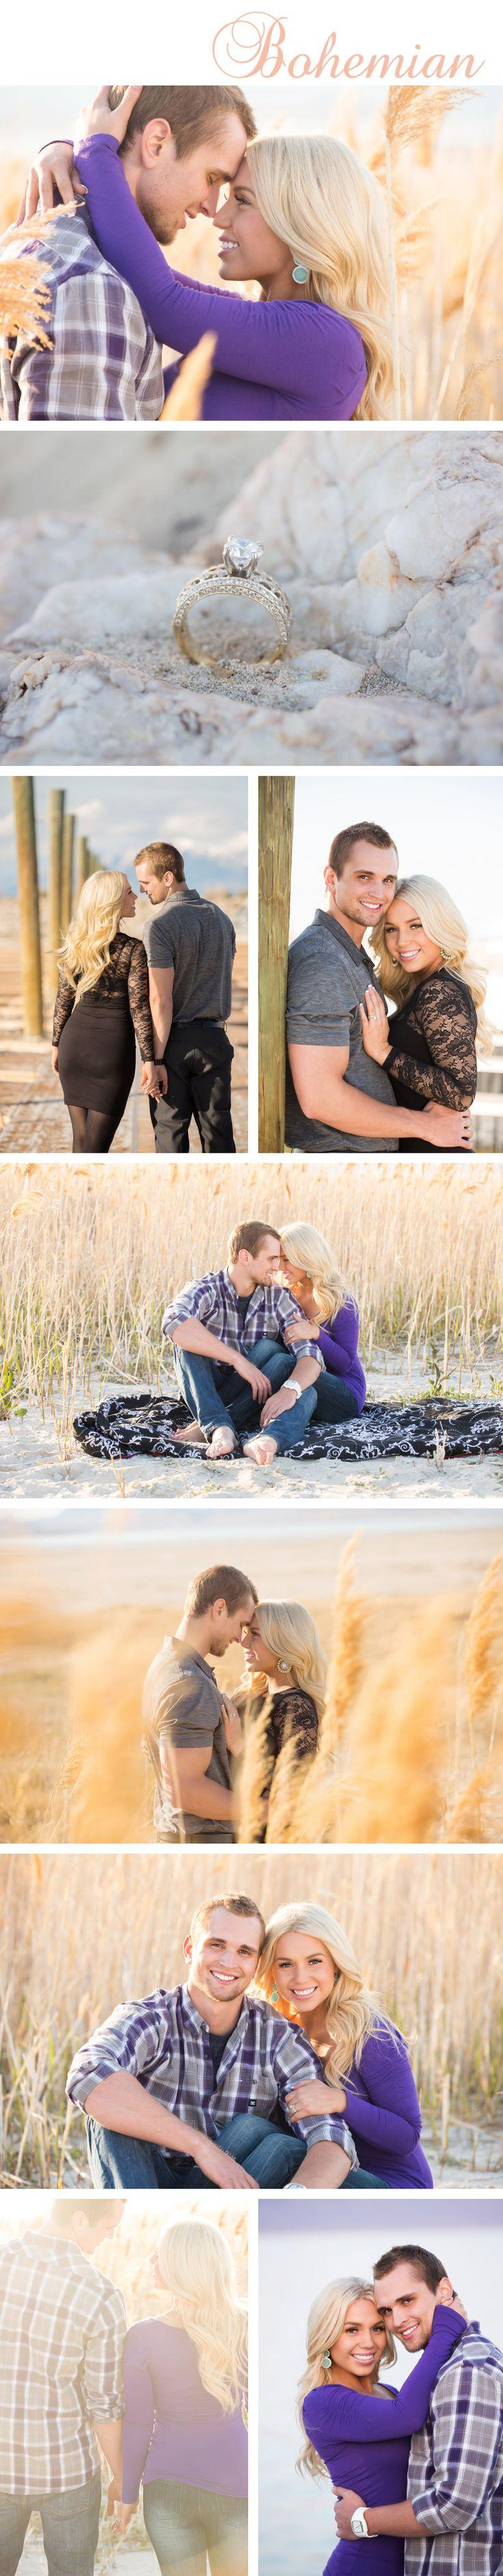 Fall couple shoot ideas